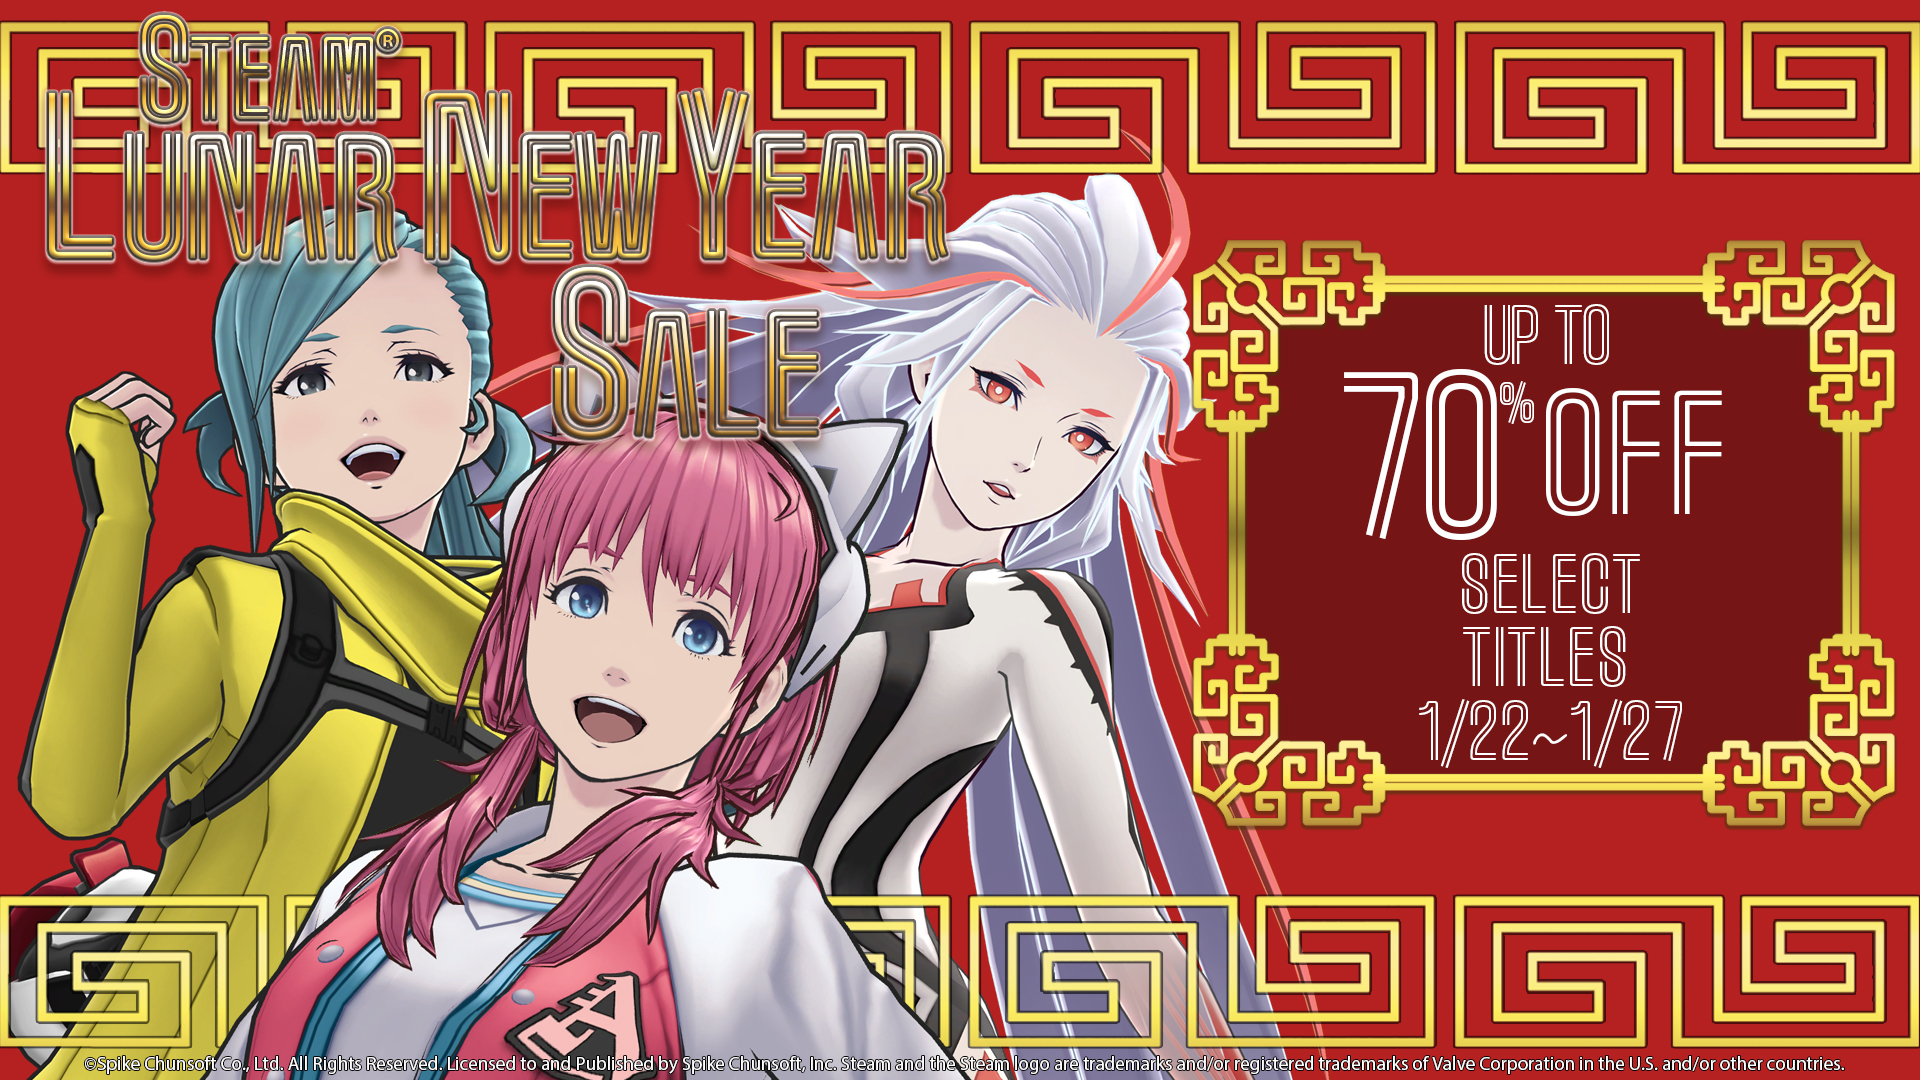 2020 LUNAR NEW YEAR SALE STARTS TODAY!